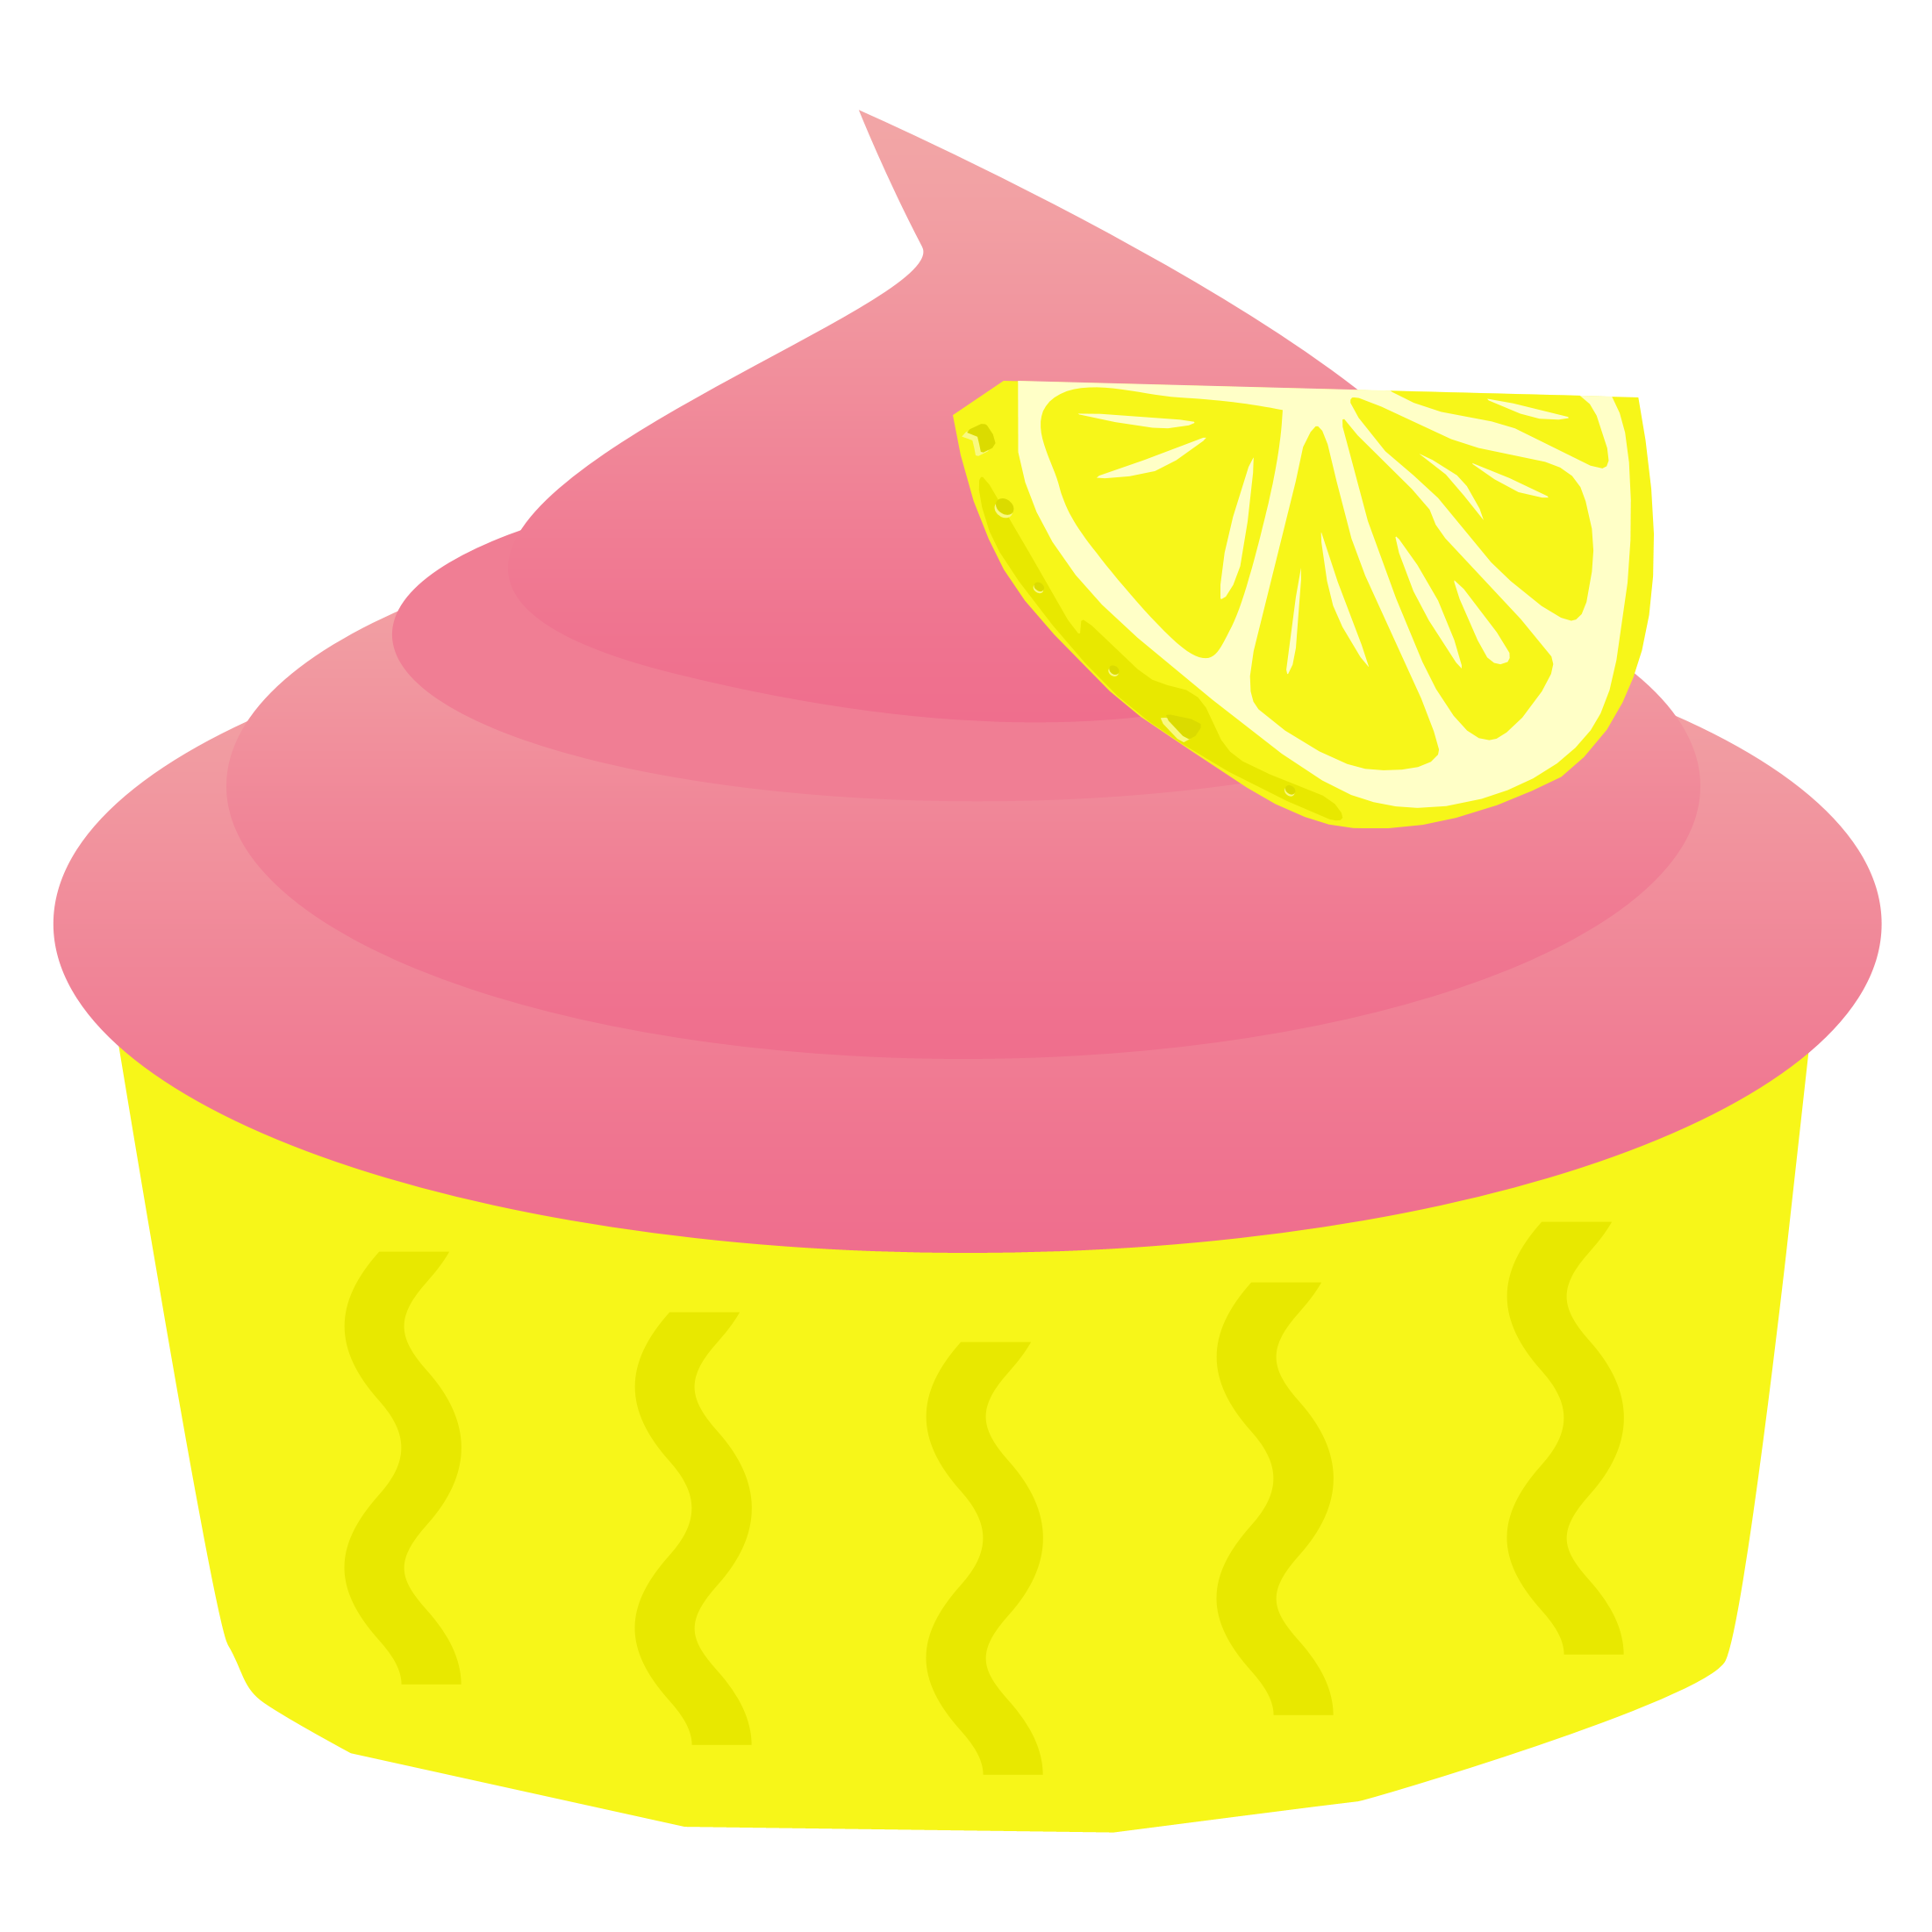 2202x2202 Cute Cupcake Clipart Images Amp Pictures